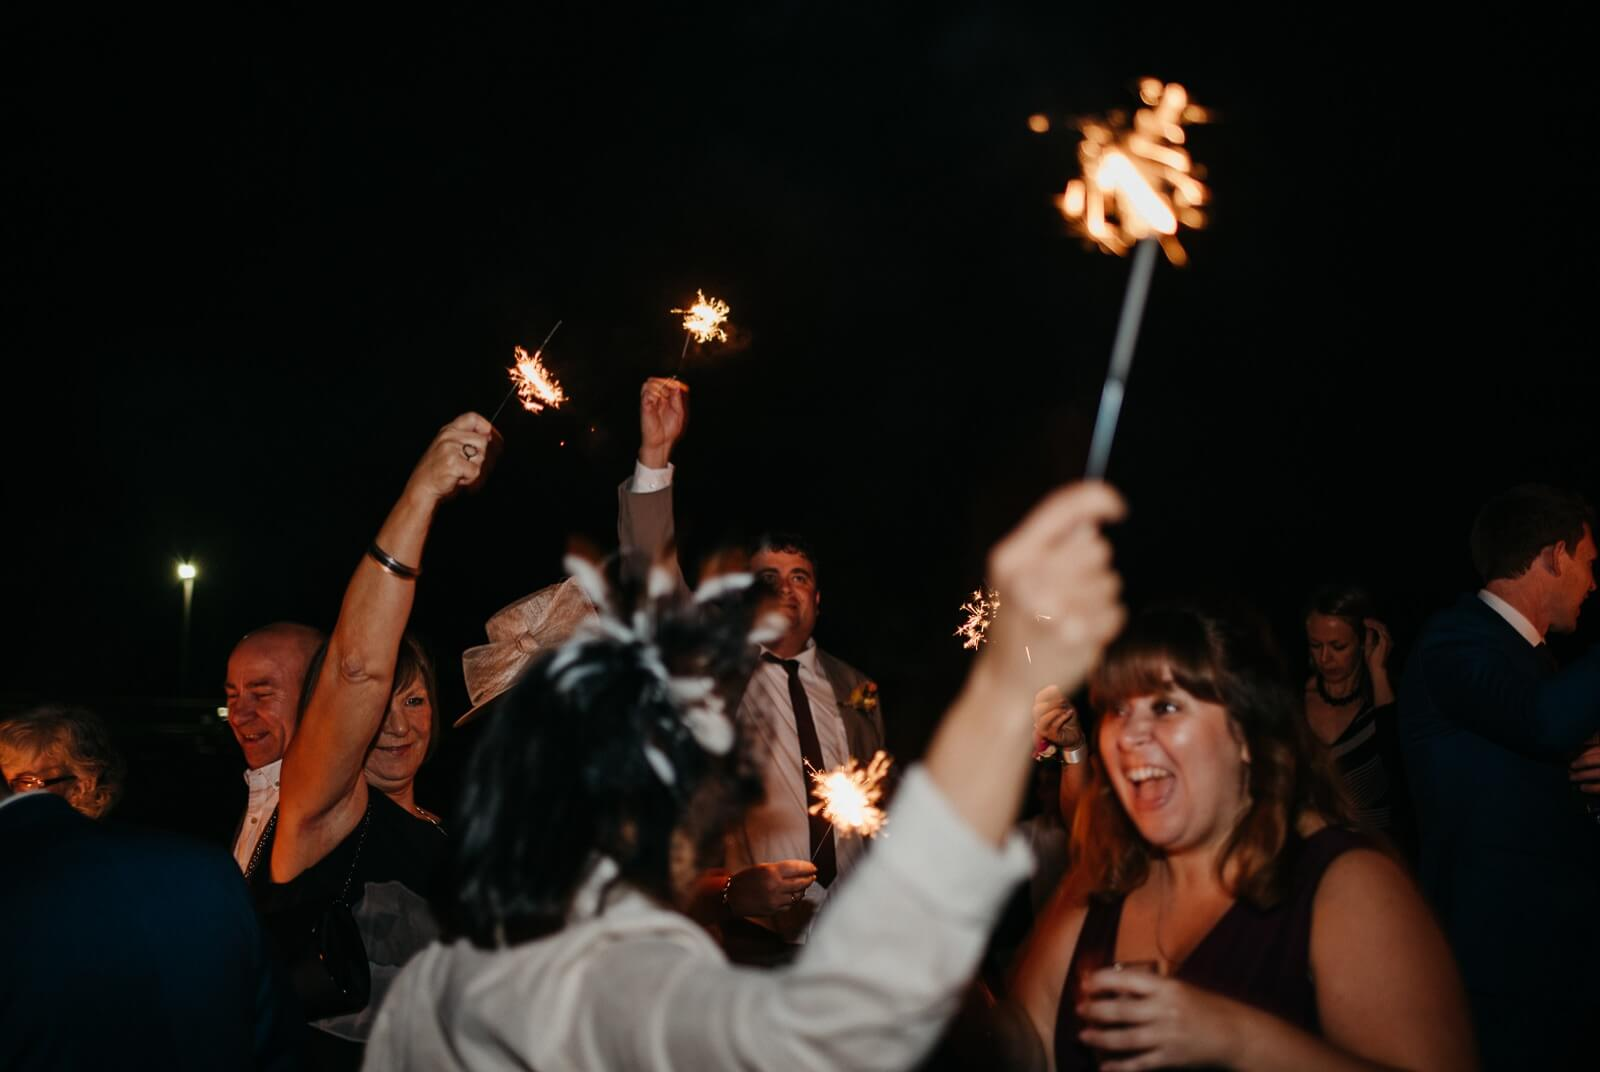 Wedding guests having fun with sparklers at autumn wedding at Ty Mawr, Cardiff